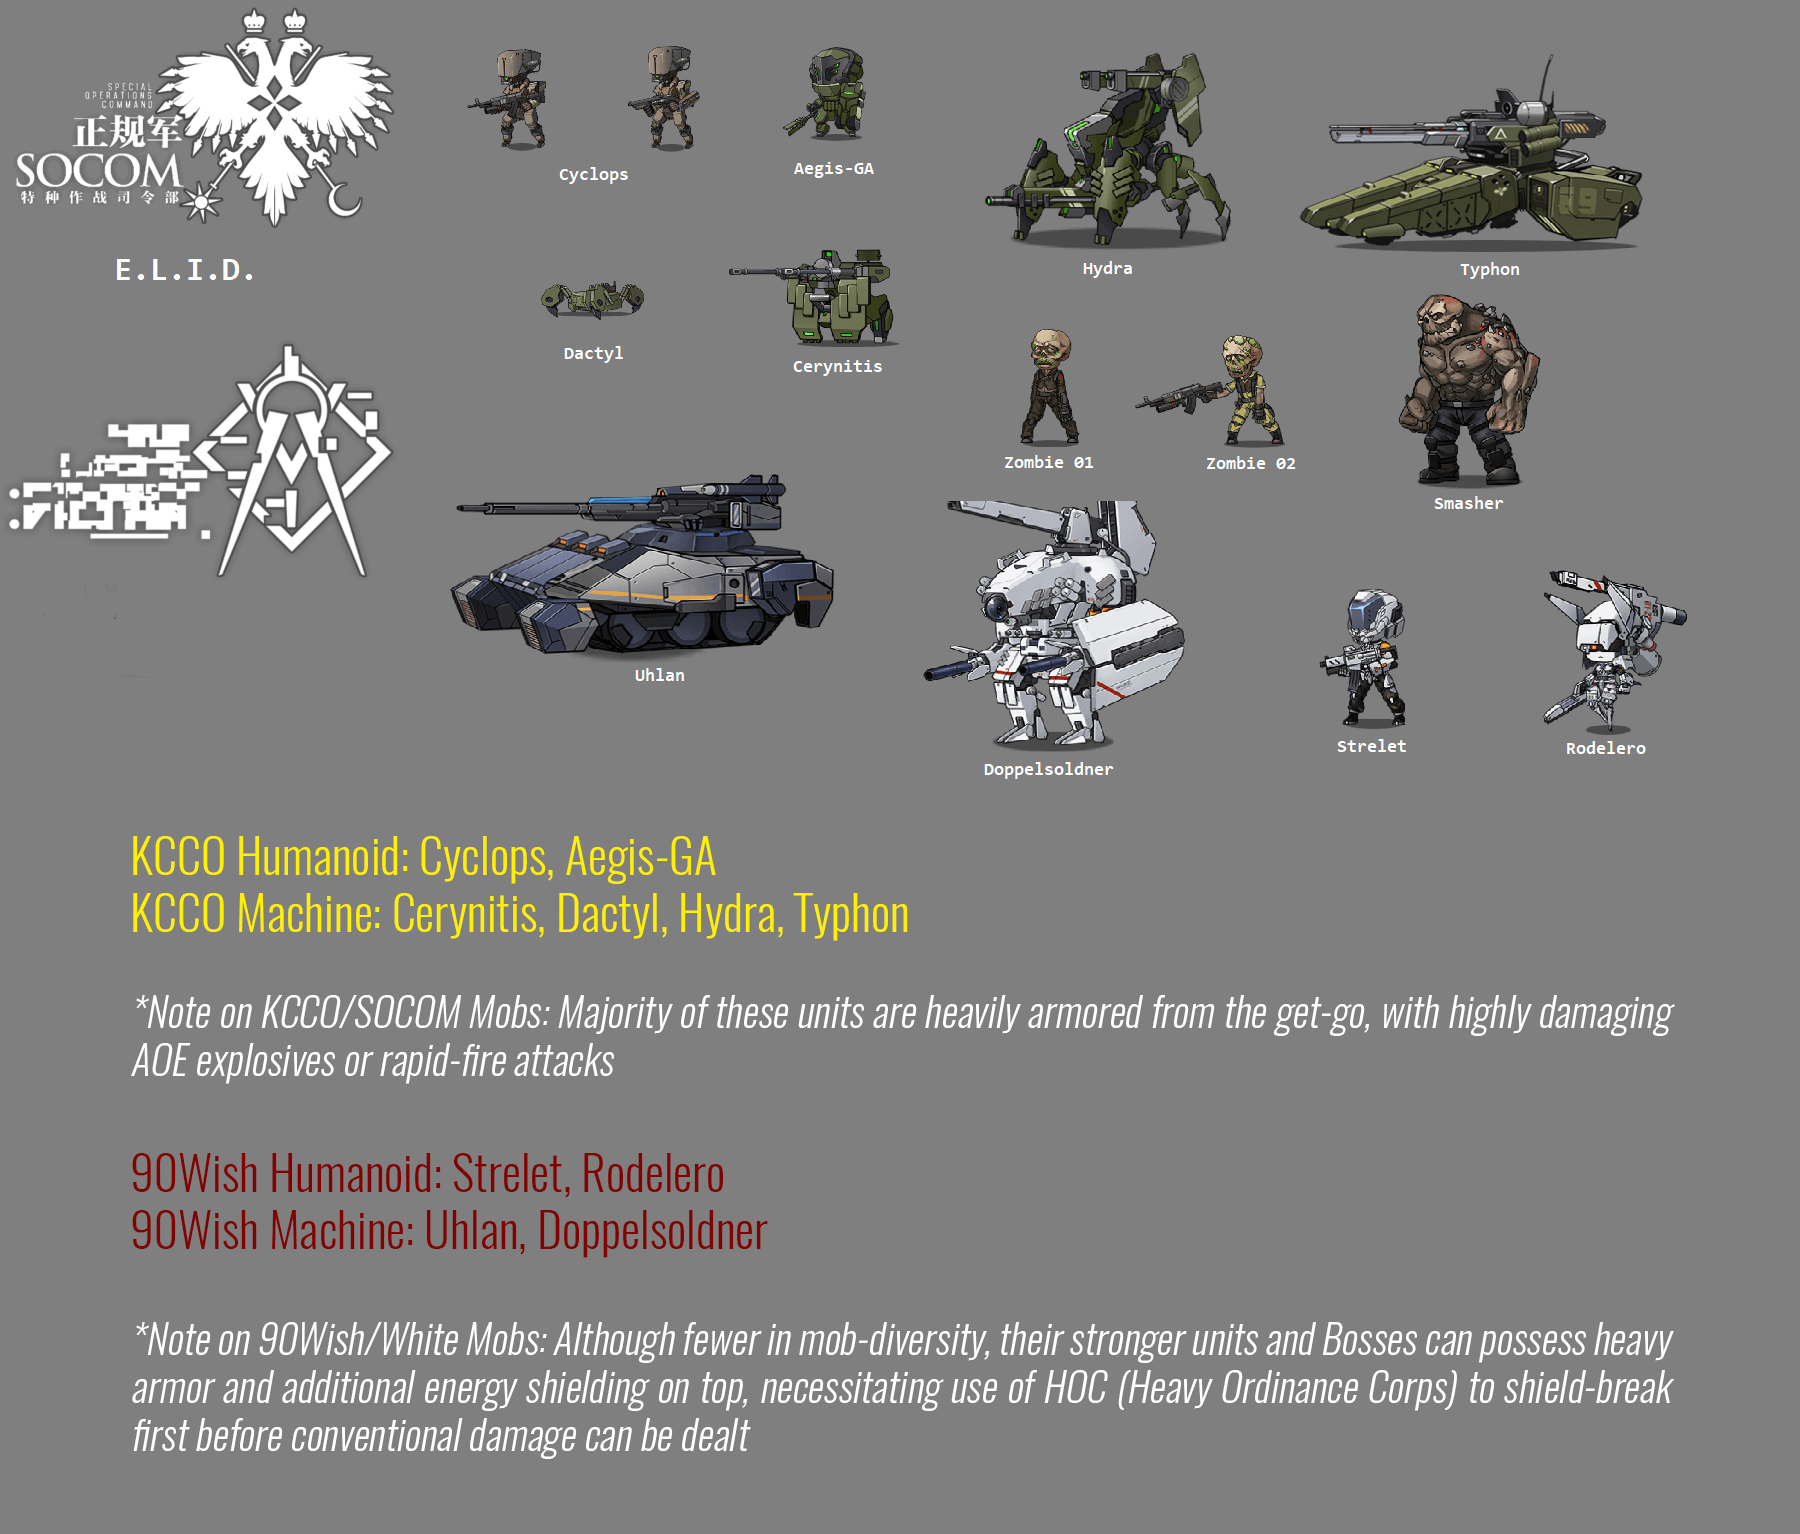 Enemy Infographic (Other Factions), by GFLCorner